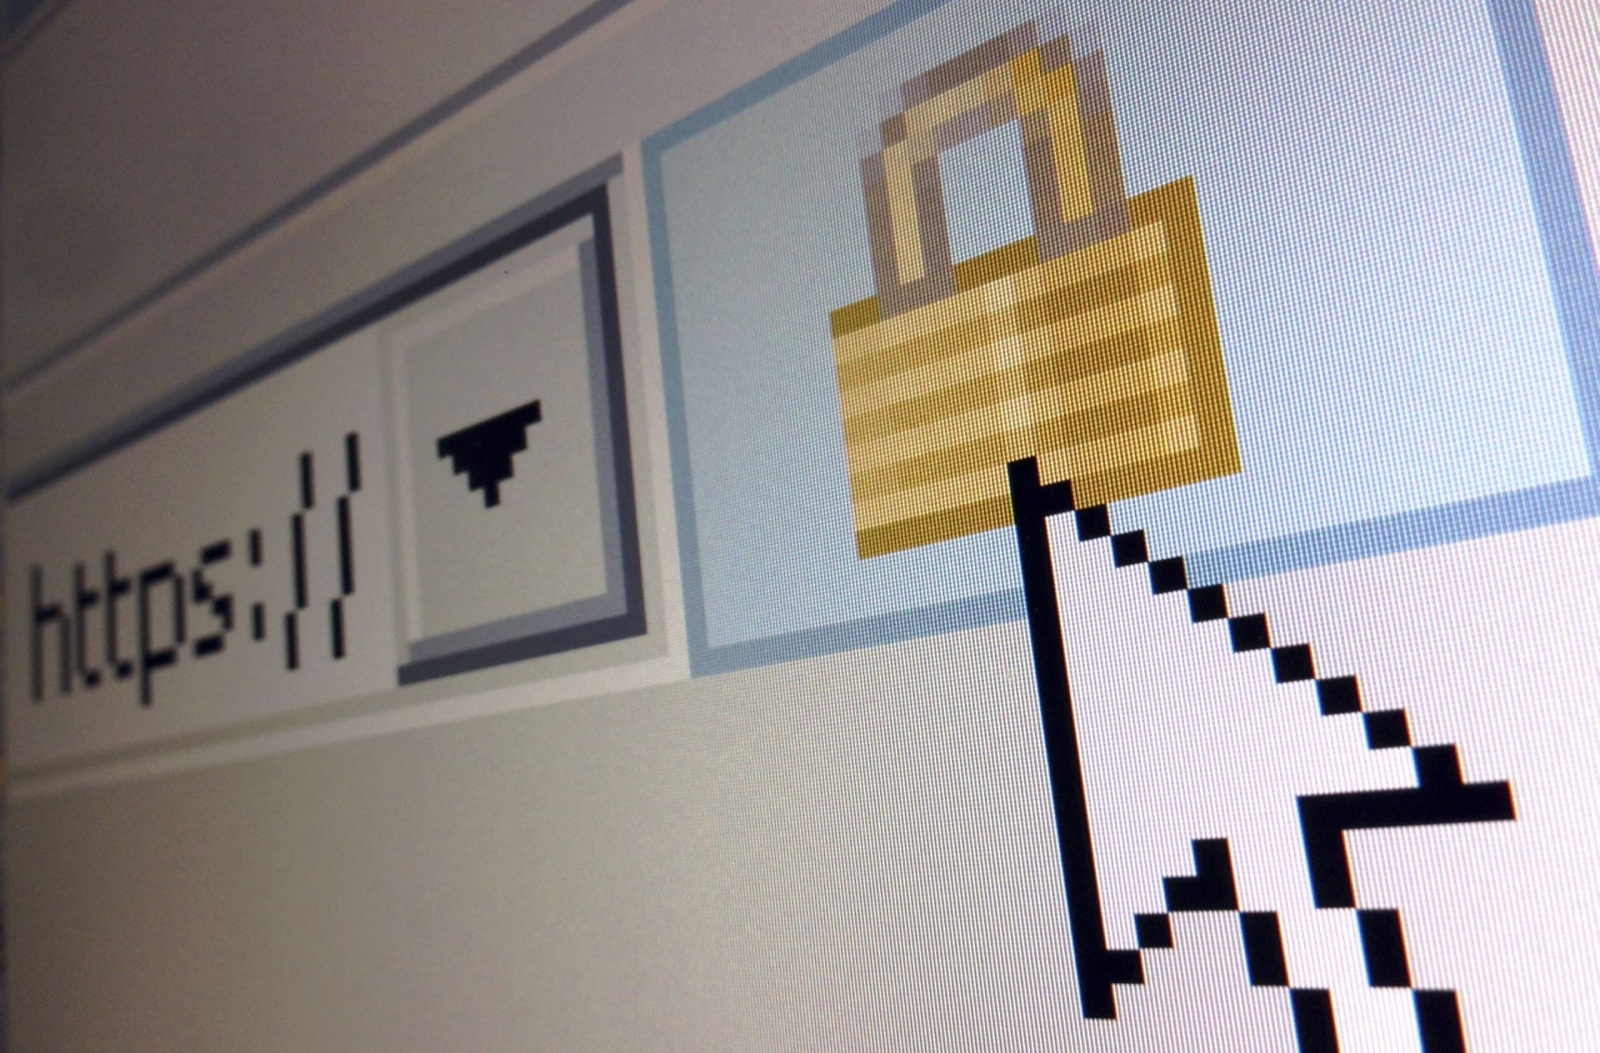 Six Alternatives to Google and Facebook in the Battle for Online Privacy